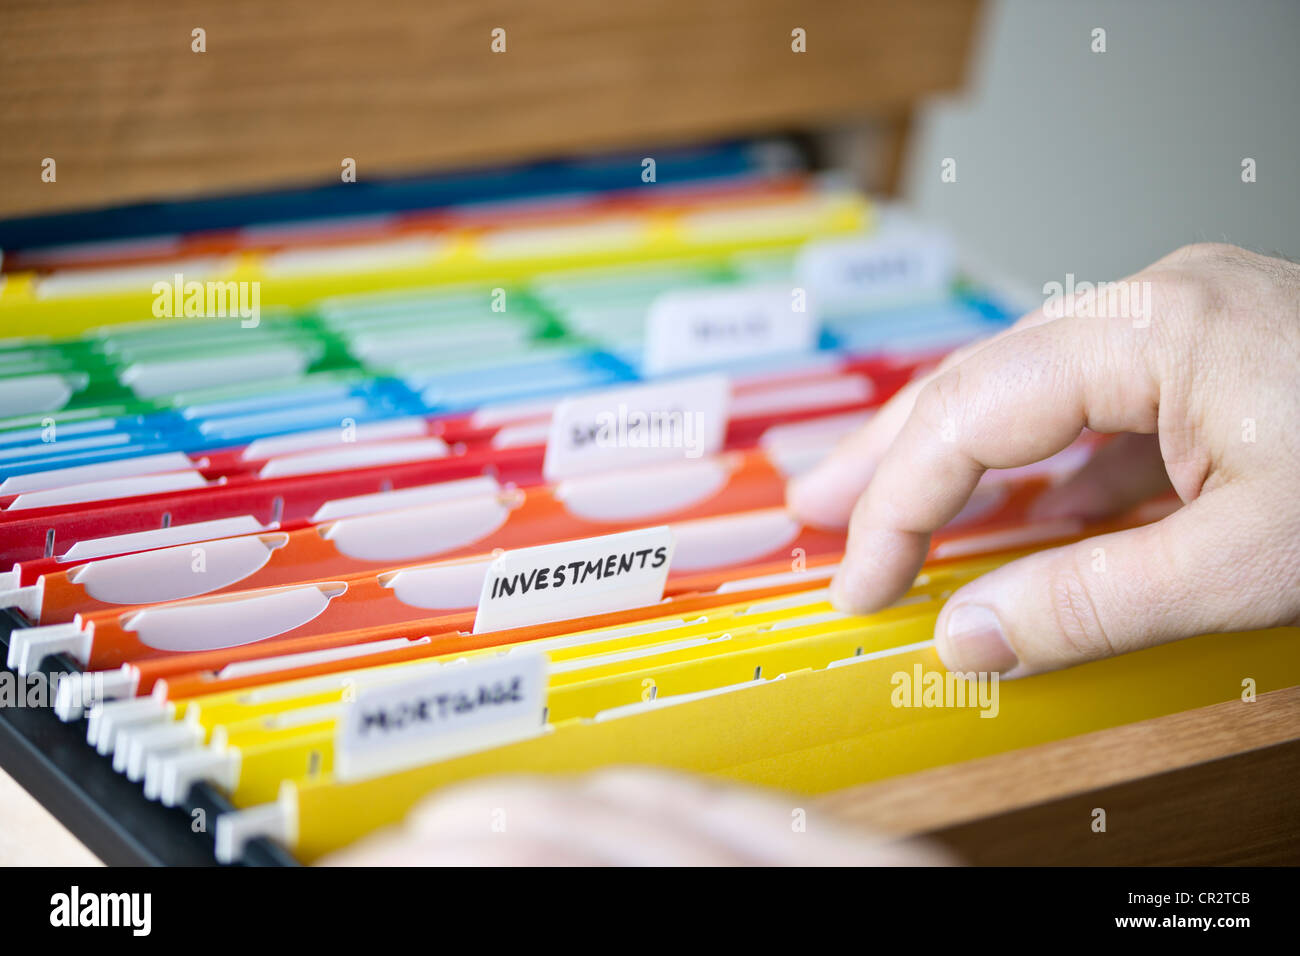 Hands searching through file folders with personal finance documents - Stock Image